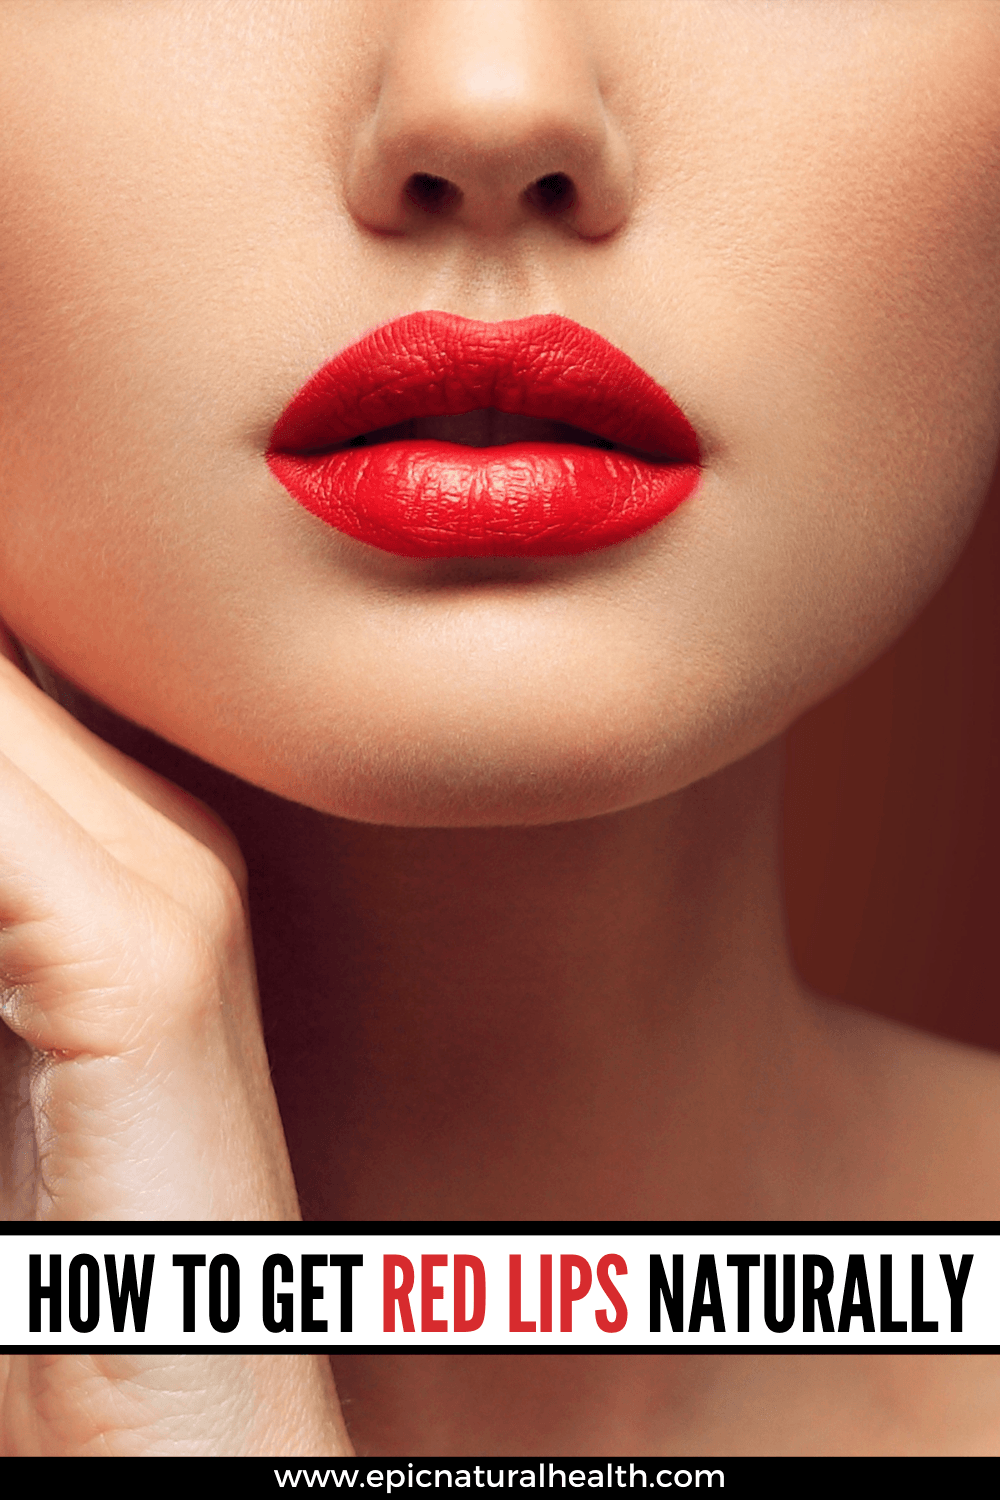 How to get red lips naturally